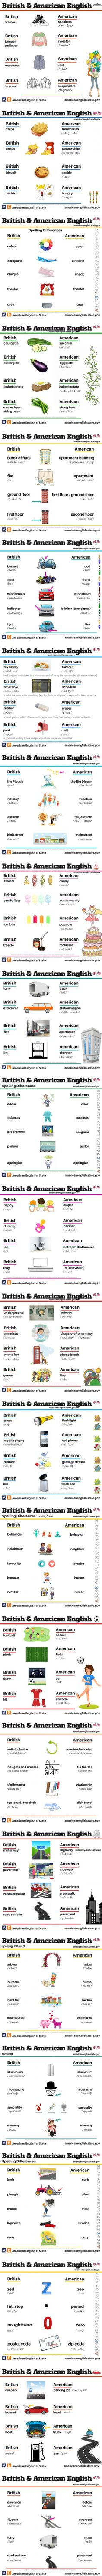 British Vs American English: 100+ Differences Illustrated: I seriously need to keep this on hand, because I can never remember which spelling to use for some of these words